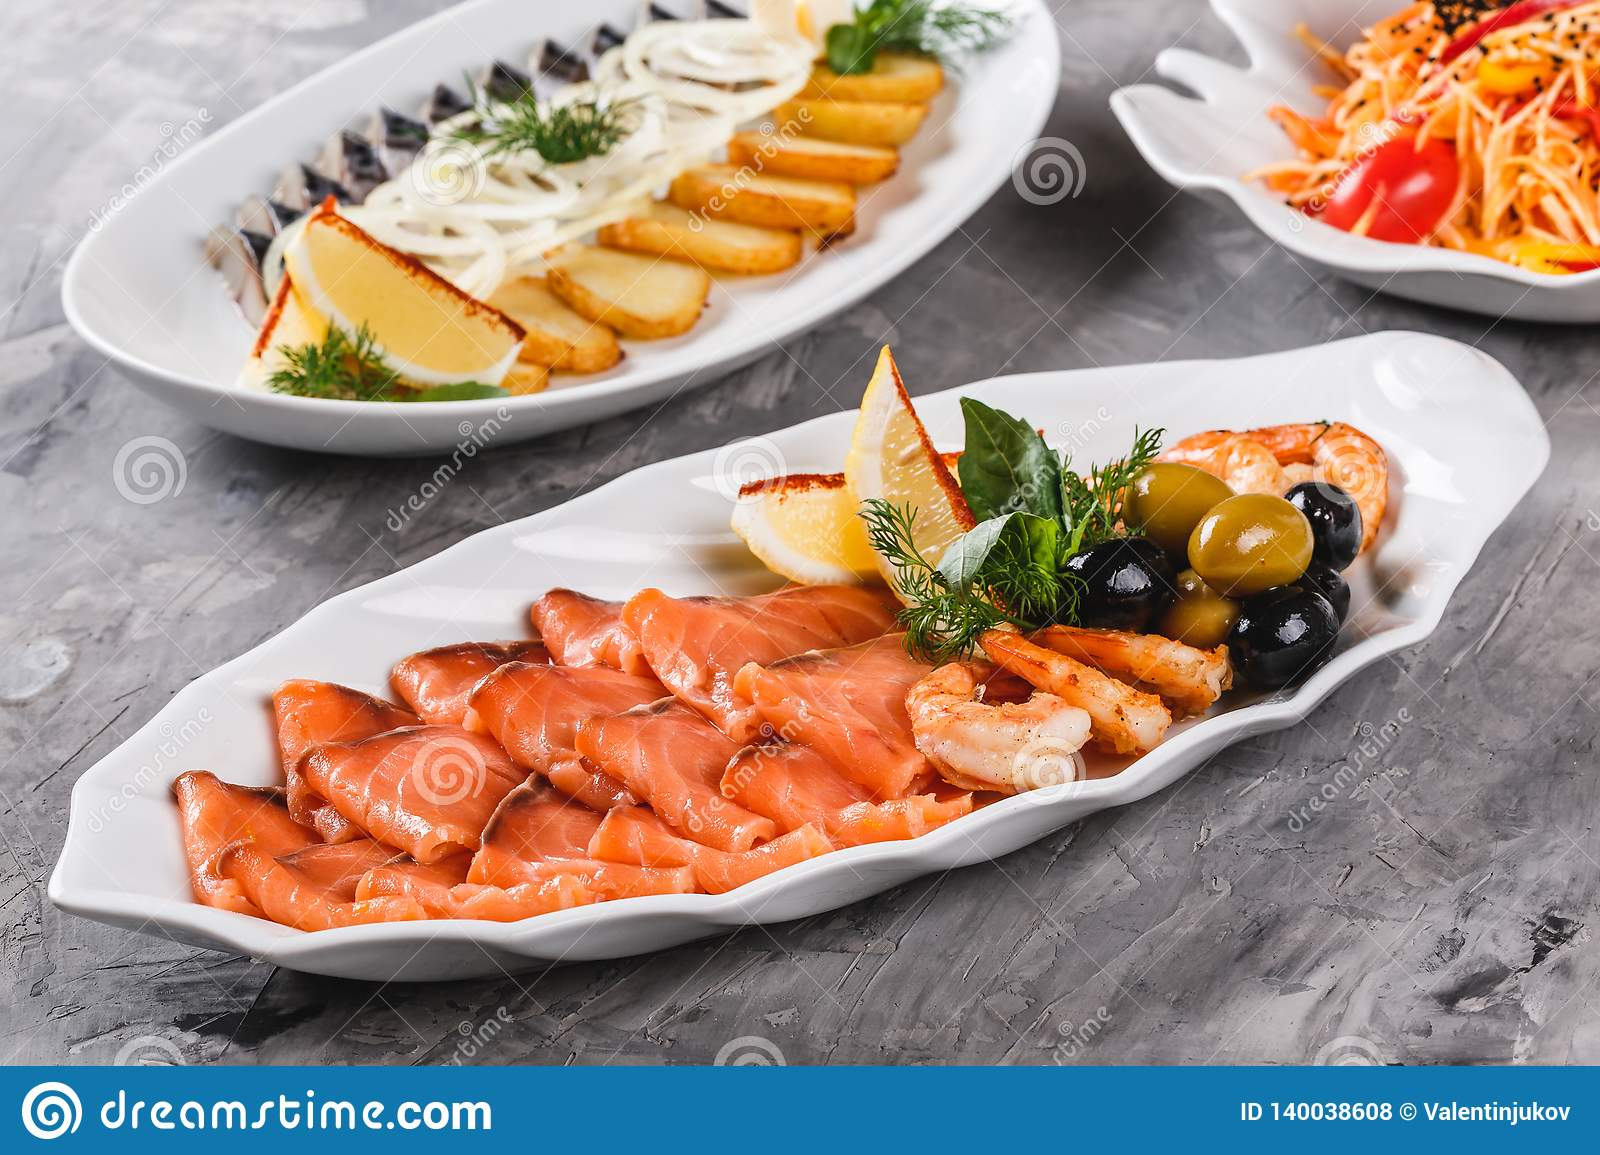 Seafood Platter With Salmon Slice Shrimp Slices Fish Fillet Decorated With Olives And Lemon In Plate Over Rustic Background Stock Photo Image Of Meal Background 140038608